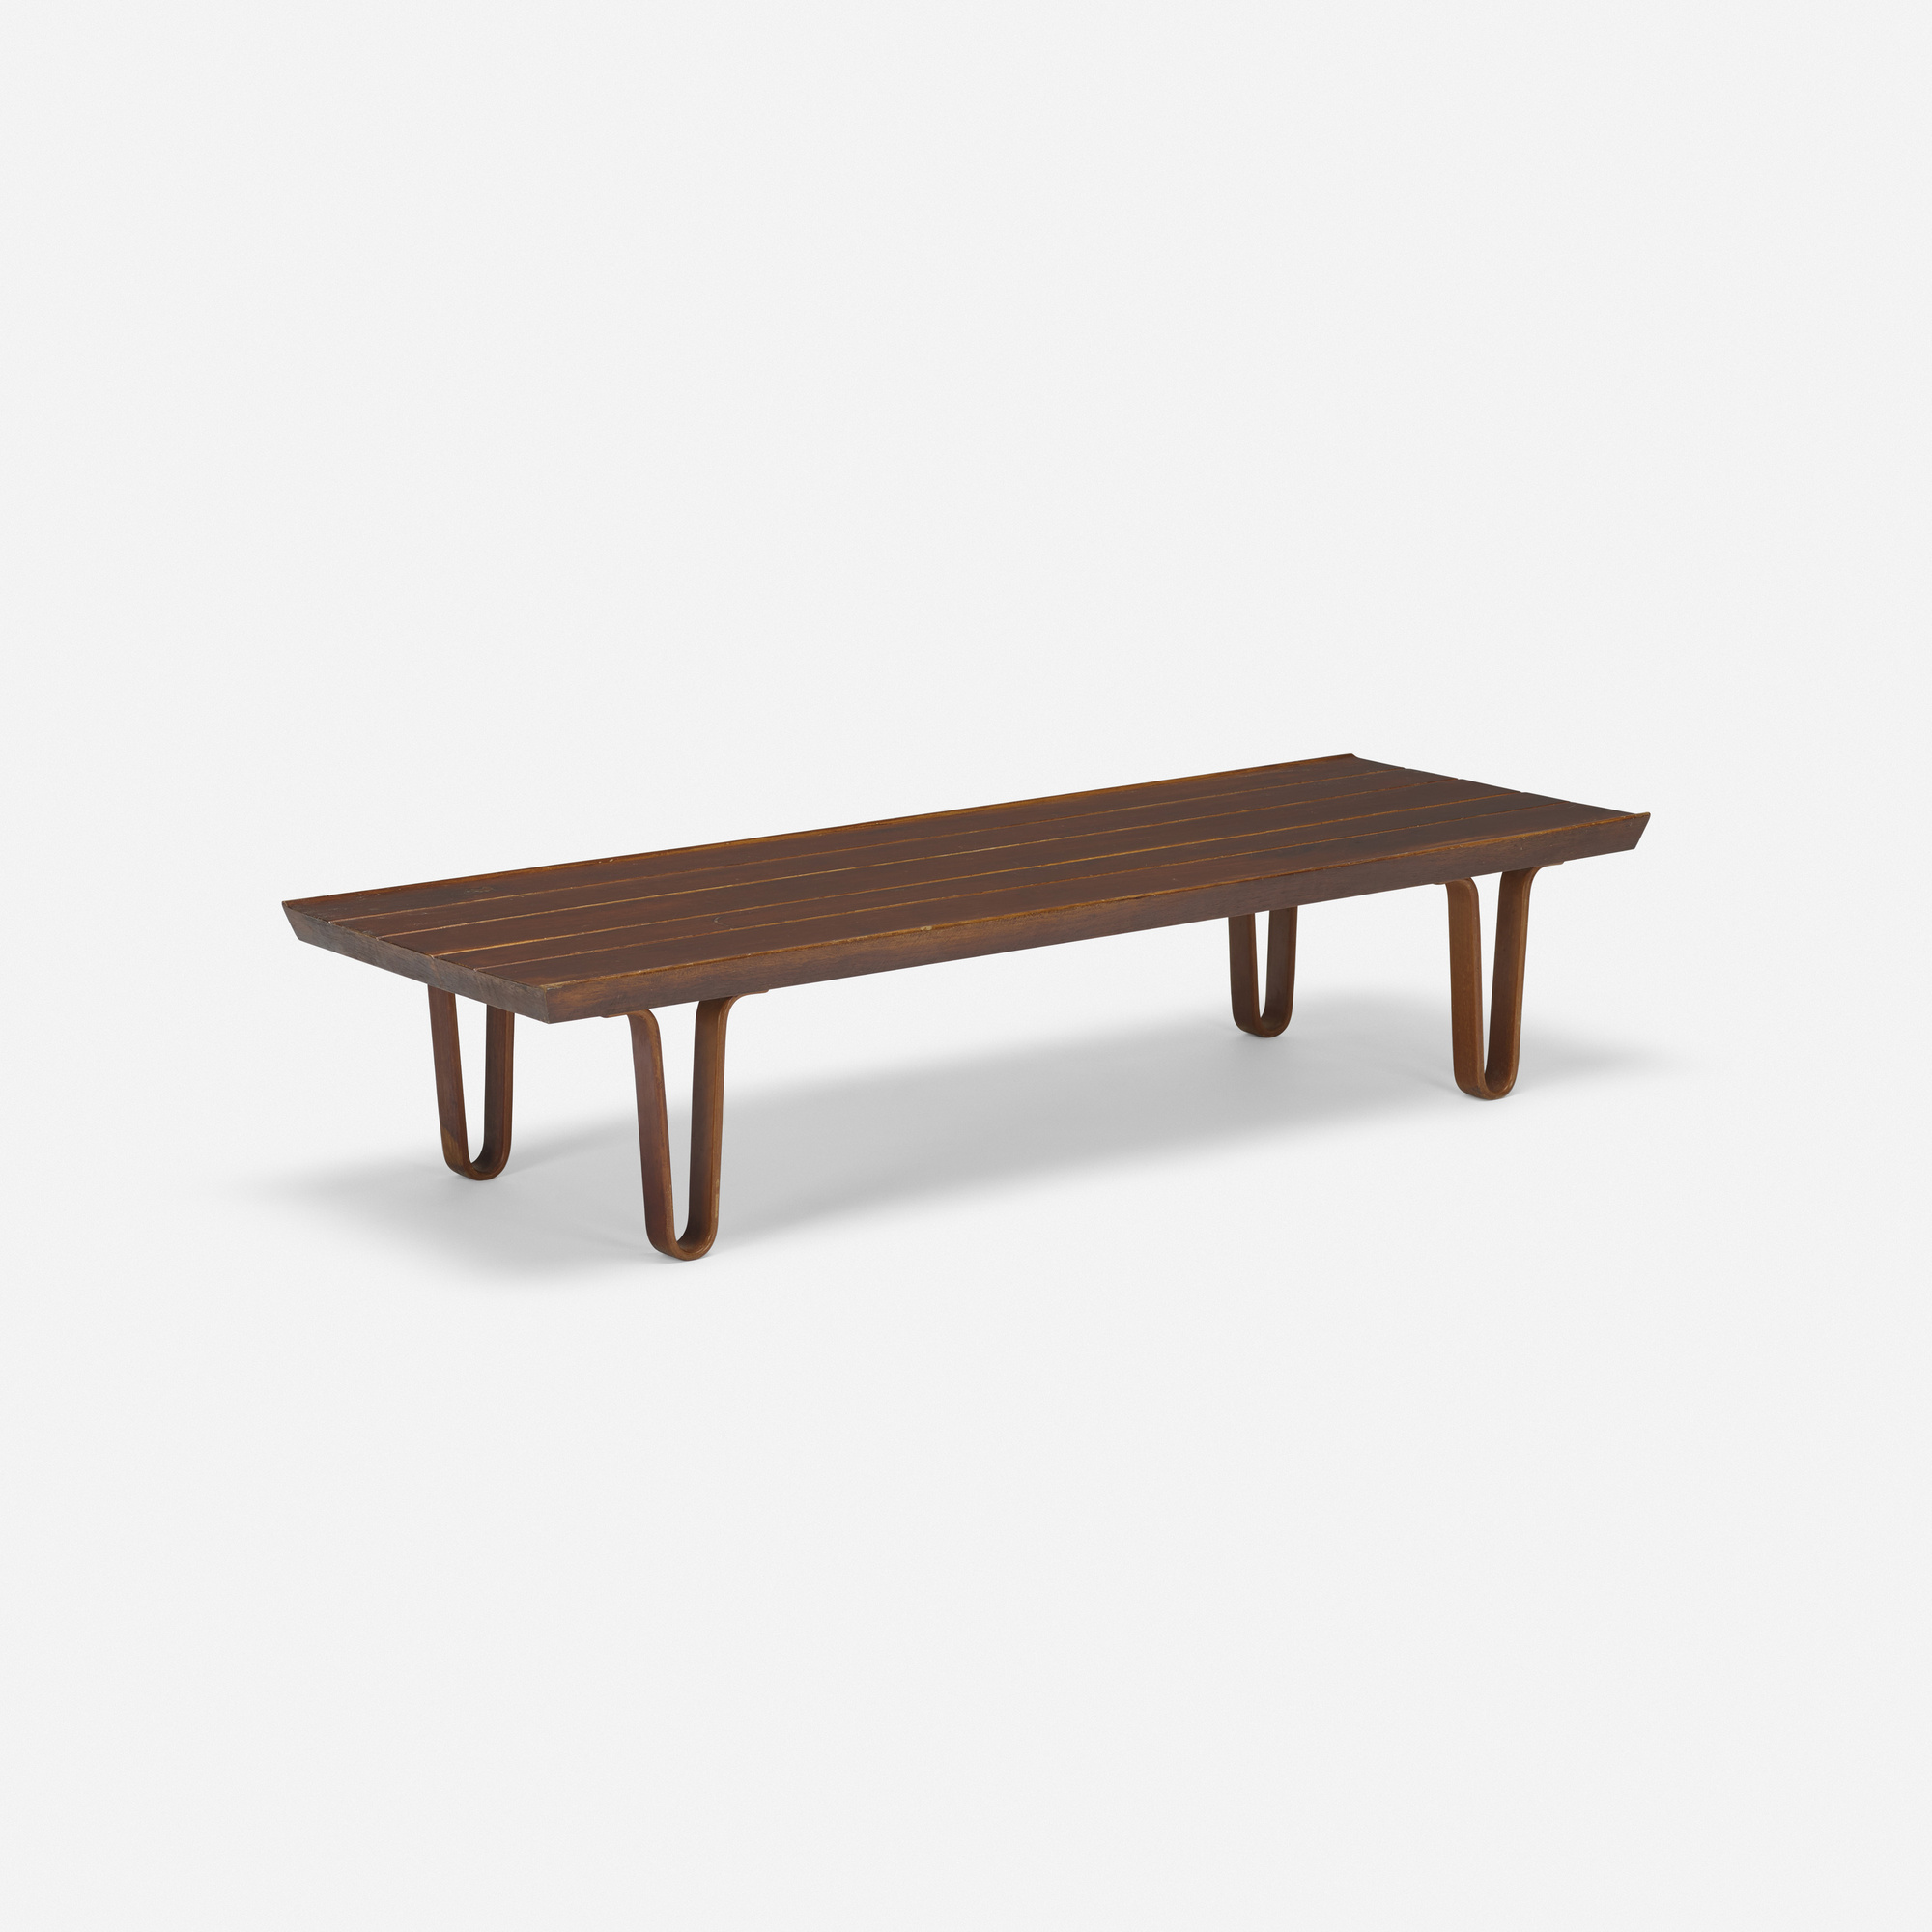 384 Edward Wormley Long John Coffee Table 1 Of 4